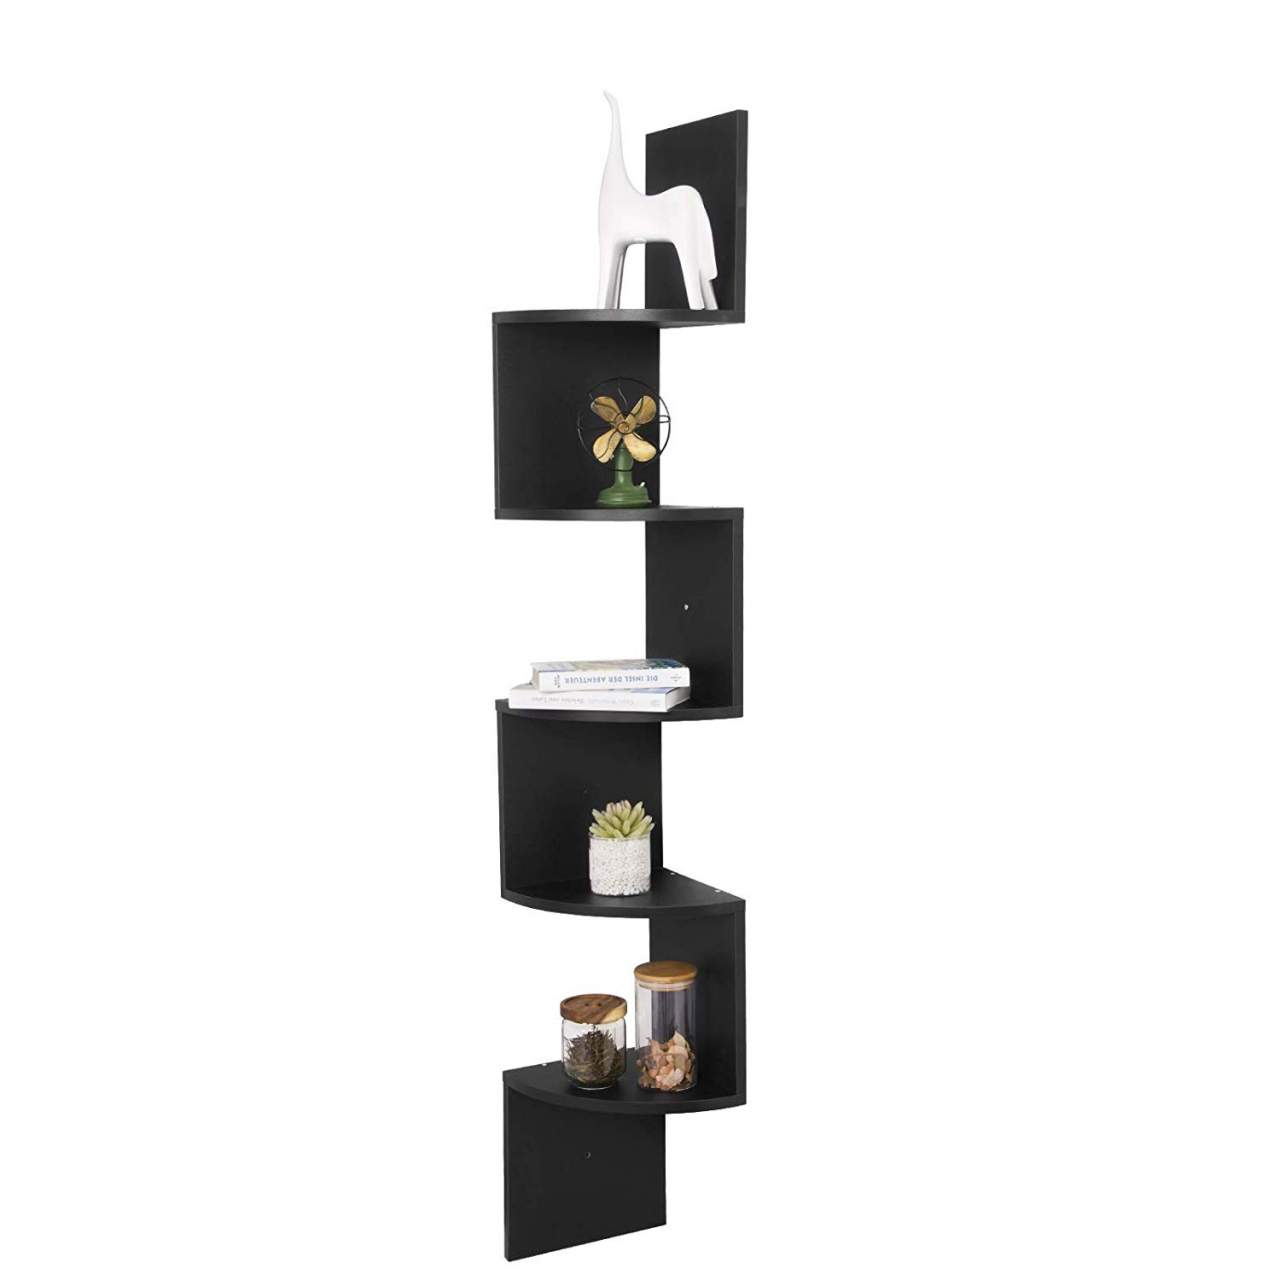 Stylish Wooden Corner Rack Wall Display 5 Shelves Bookcase Bookshelf Wood White